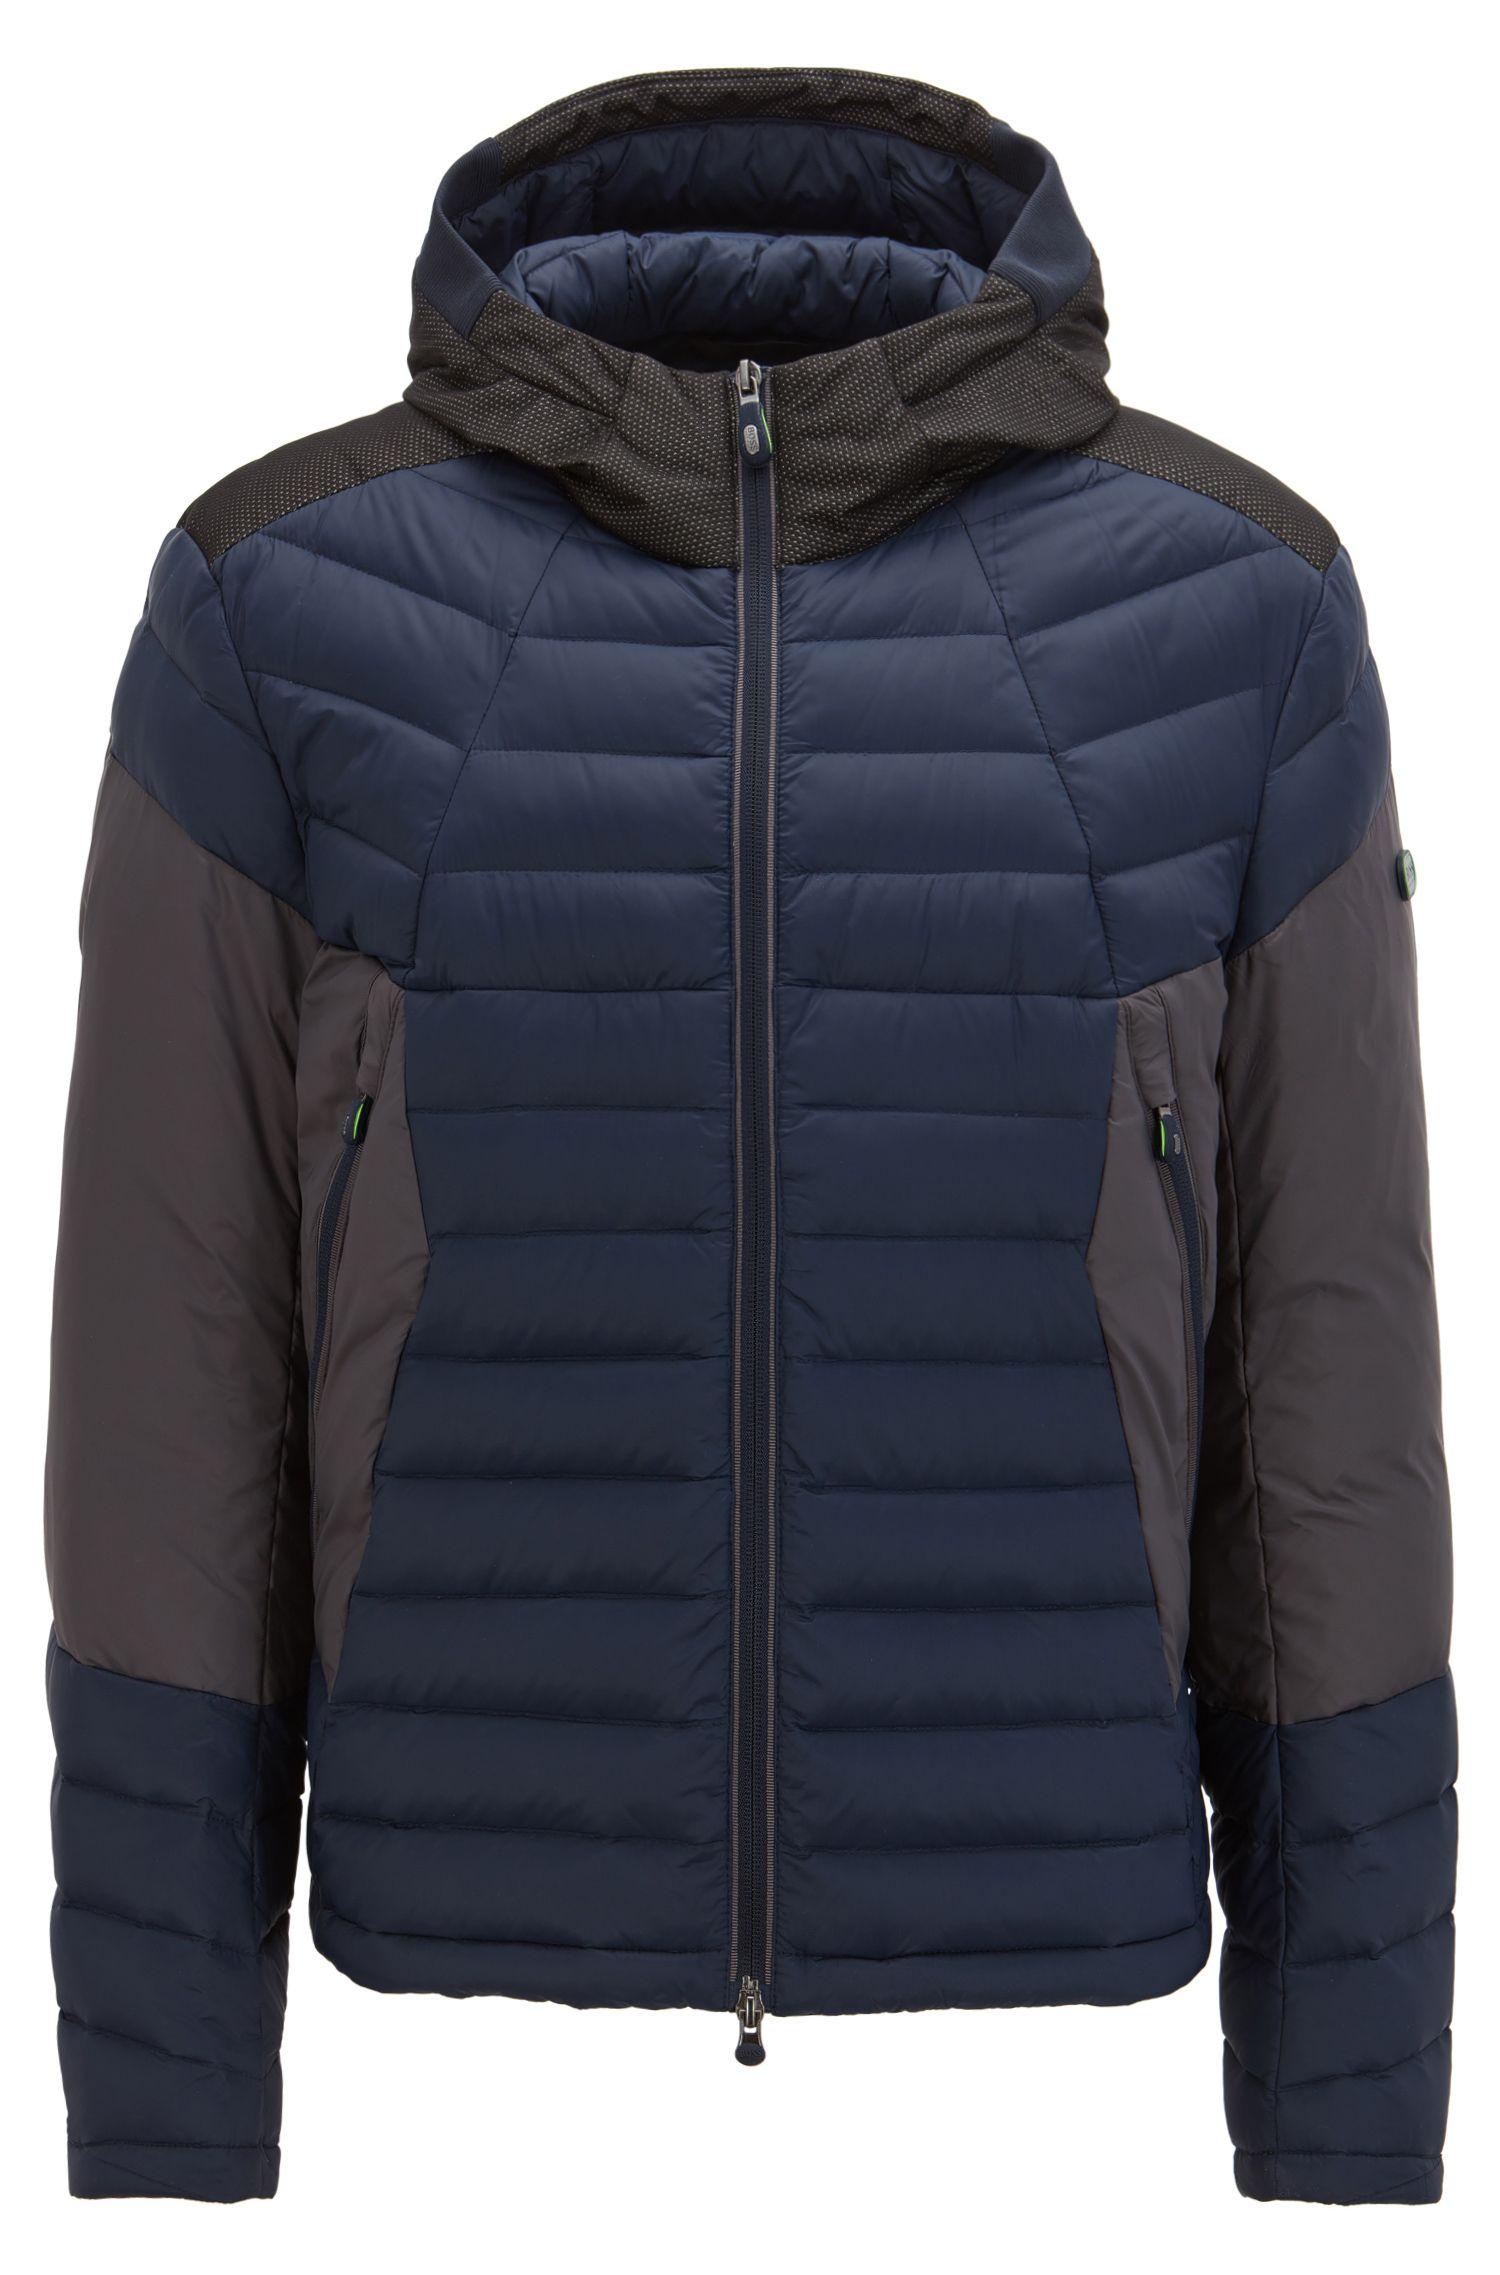 Down-filled jacket with electromagnetic-wave blocker